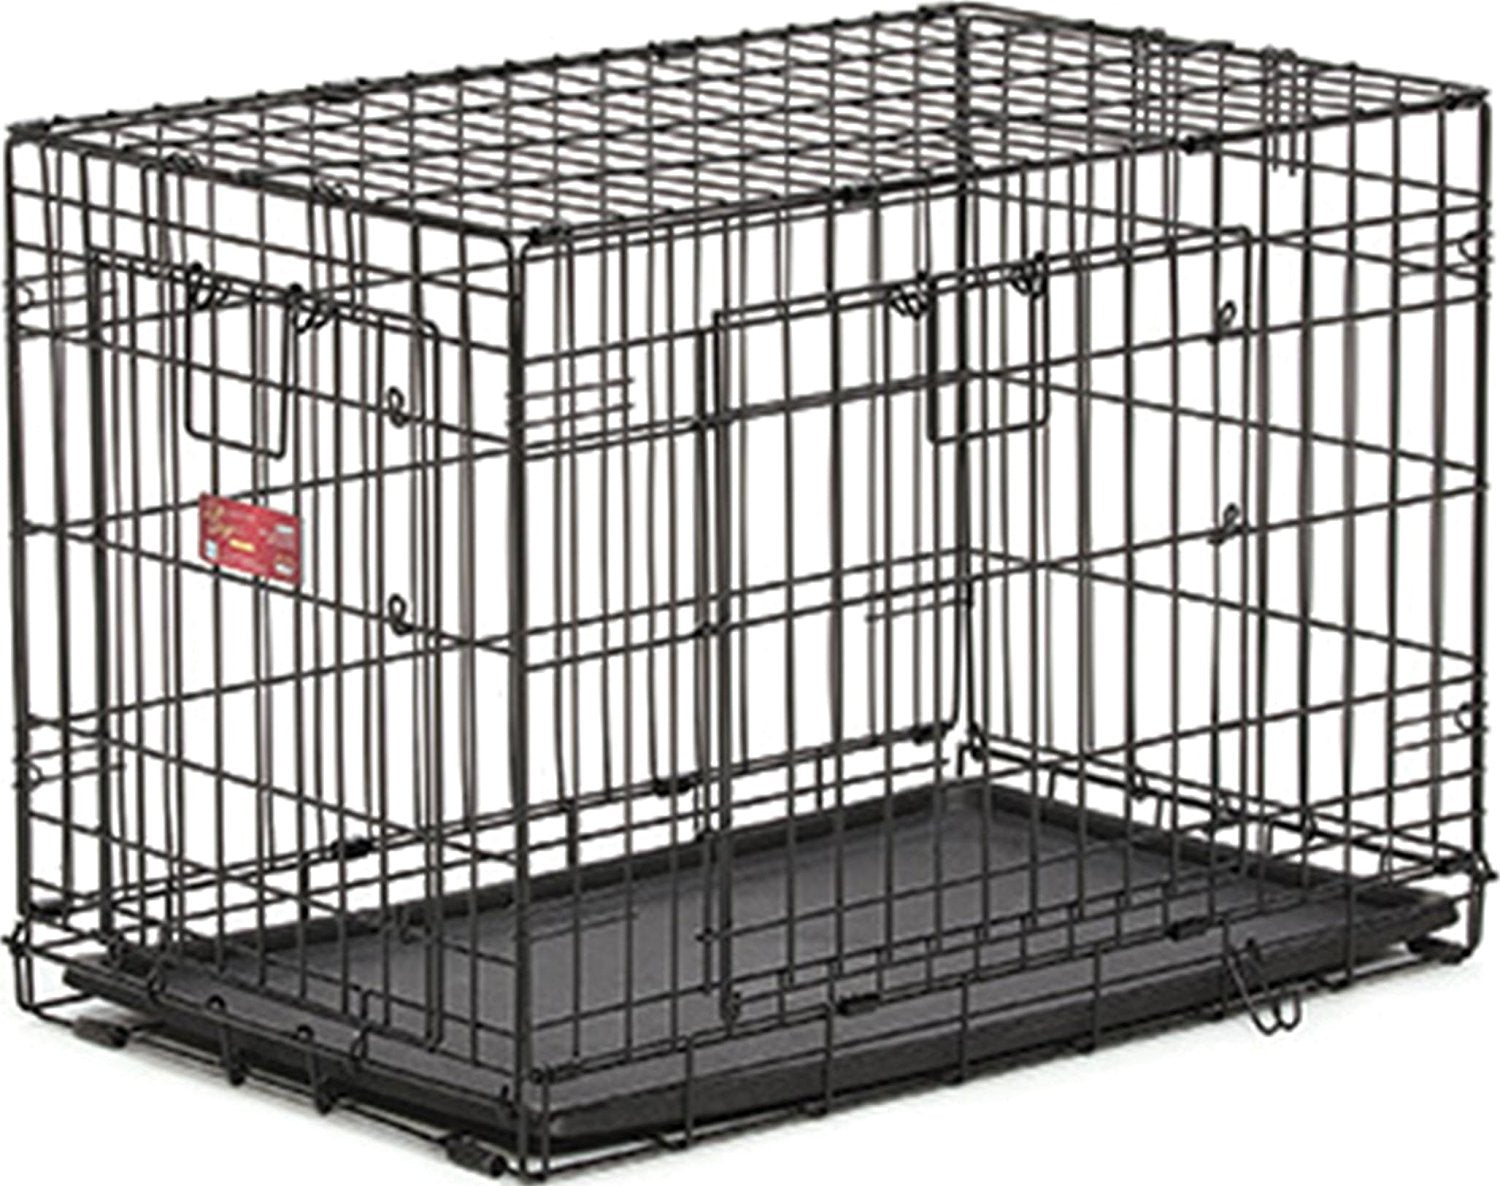 Midwest ACE-422DD Life Stage A.C.E. Double Door Dog Crate from Midwest